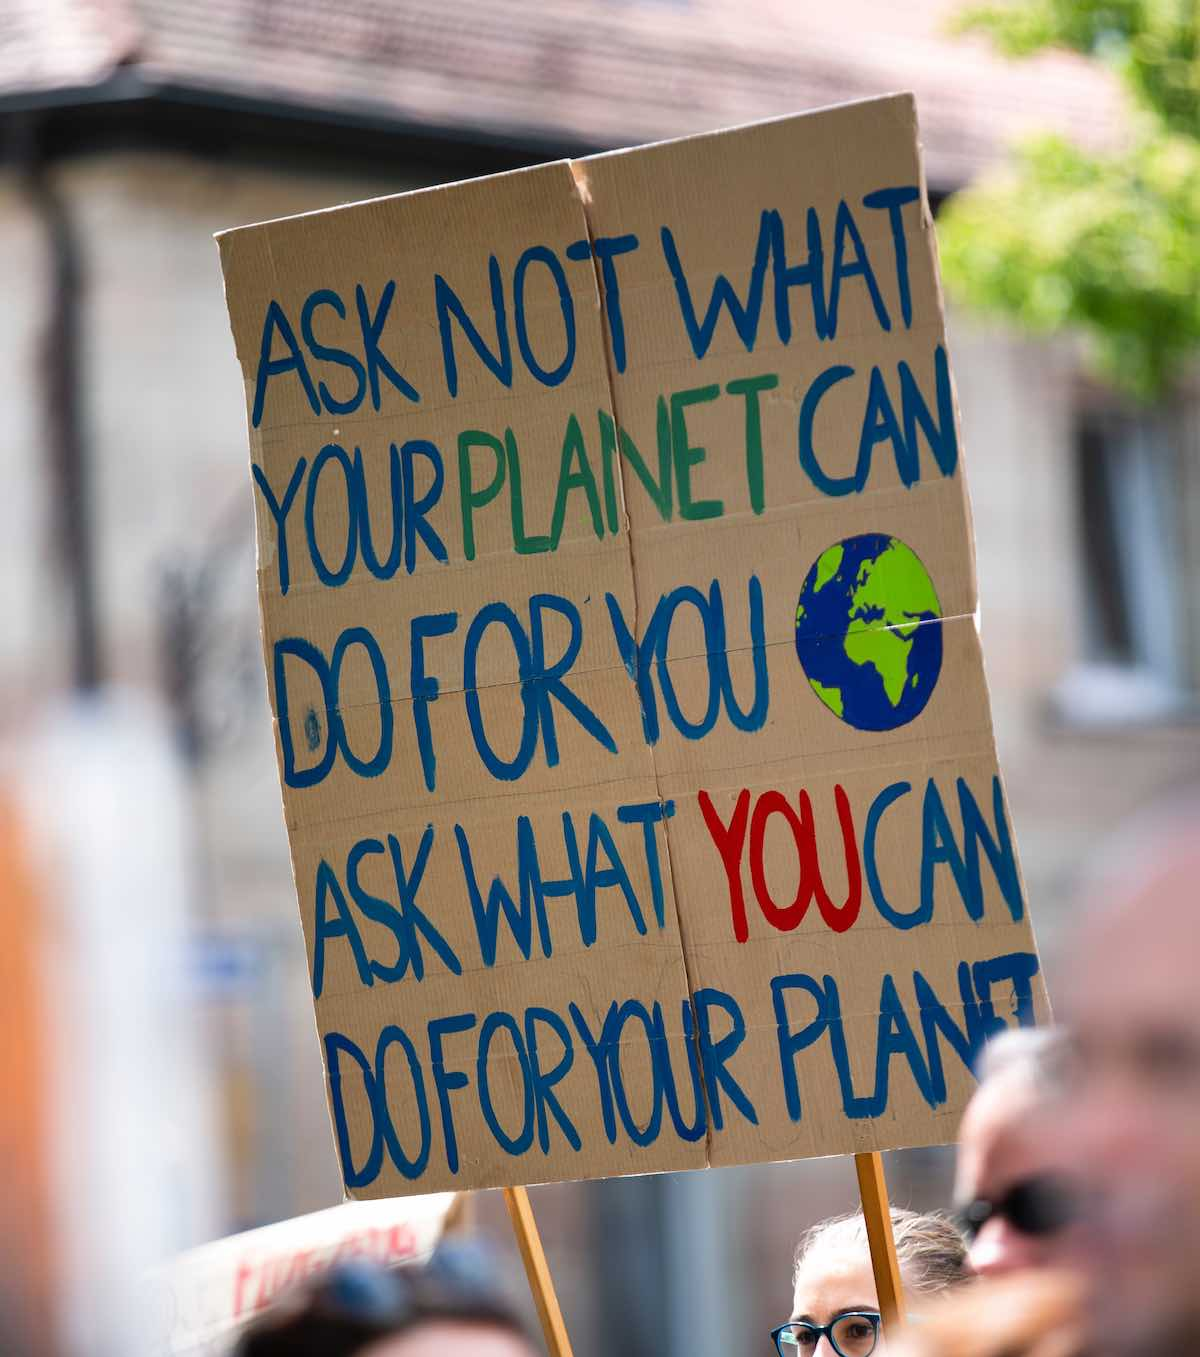 Climate change protest what can we do for our planet